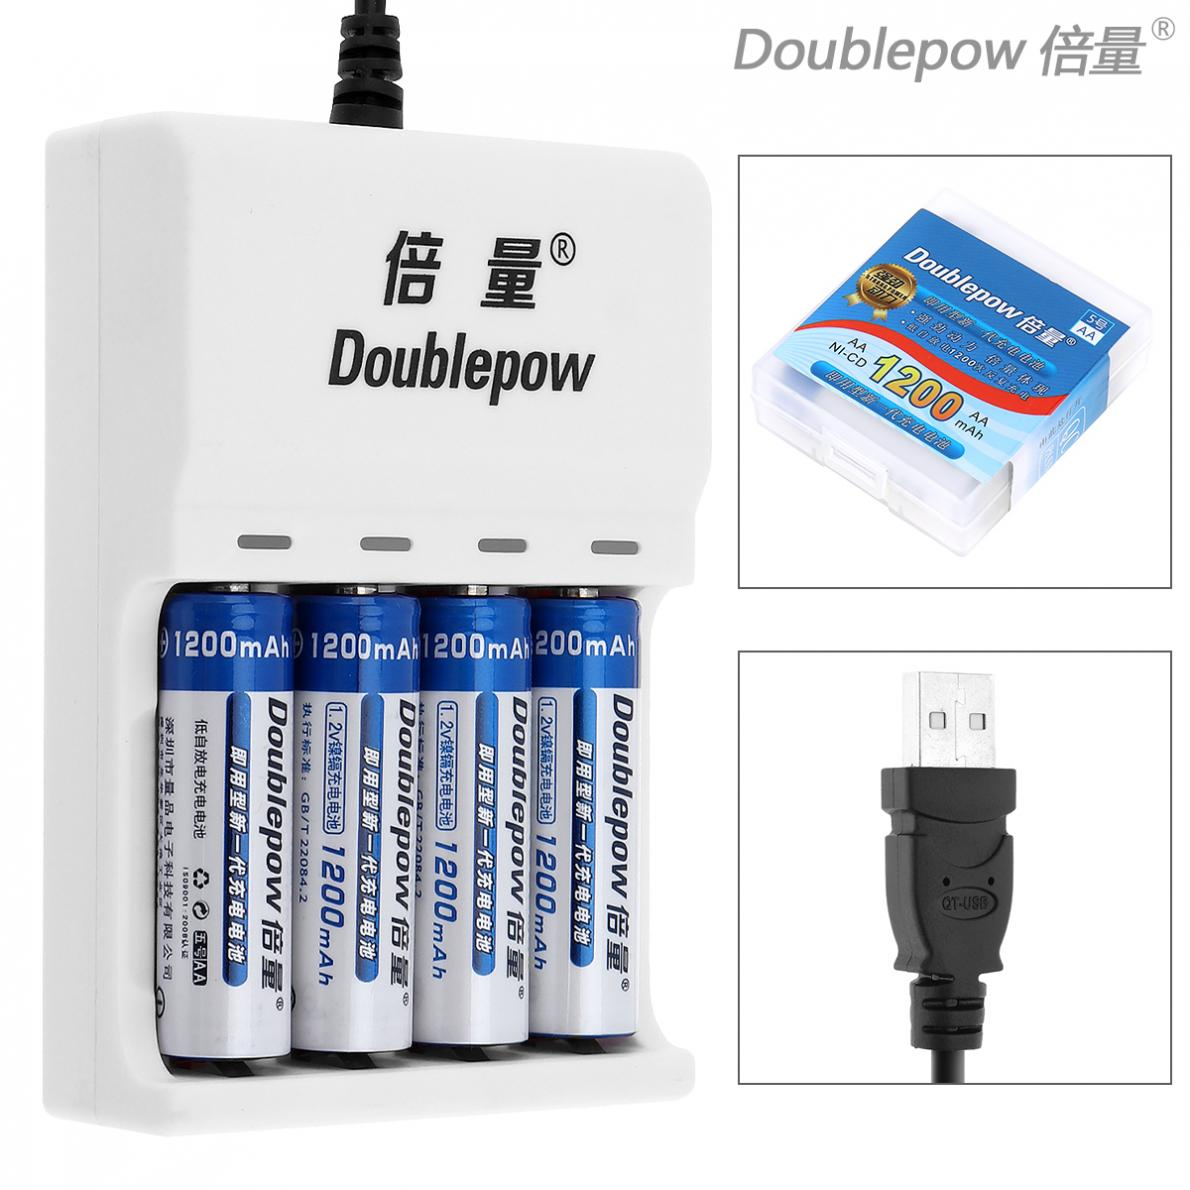 Doublepow 4 Slots USB Charger with LED Indicator + 4pcs Ni-CD AA 1200mAh Rechargeable Batteries + Portable Battery Box